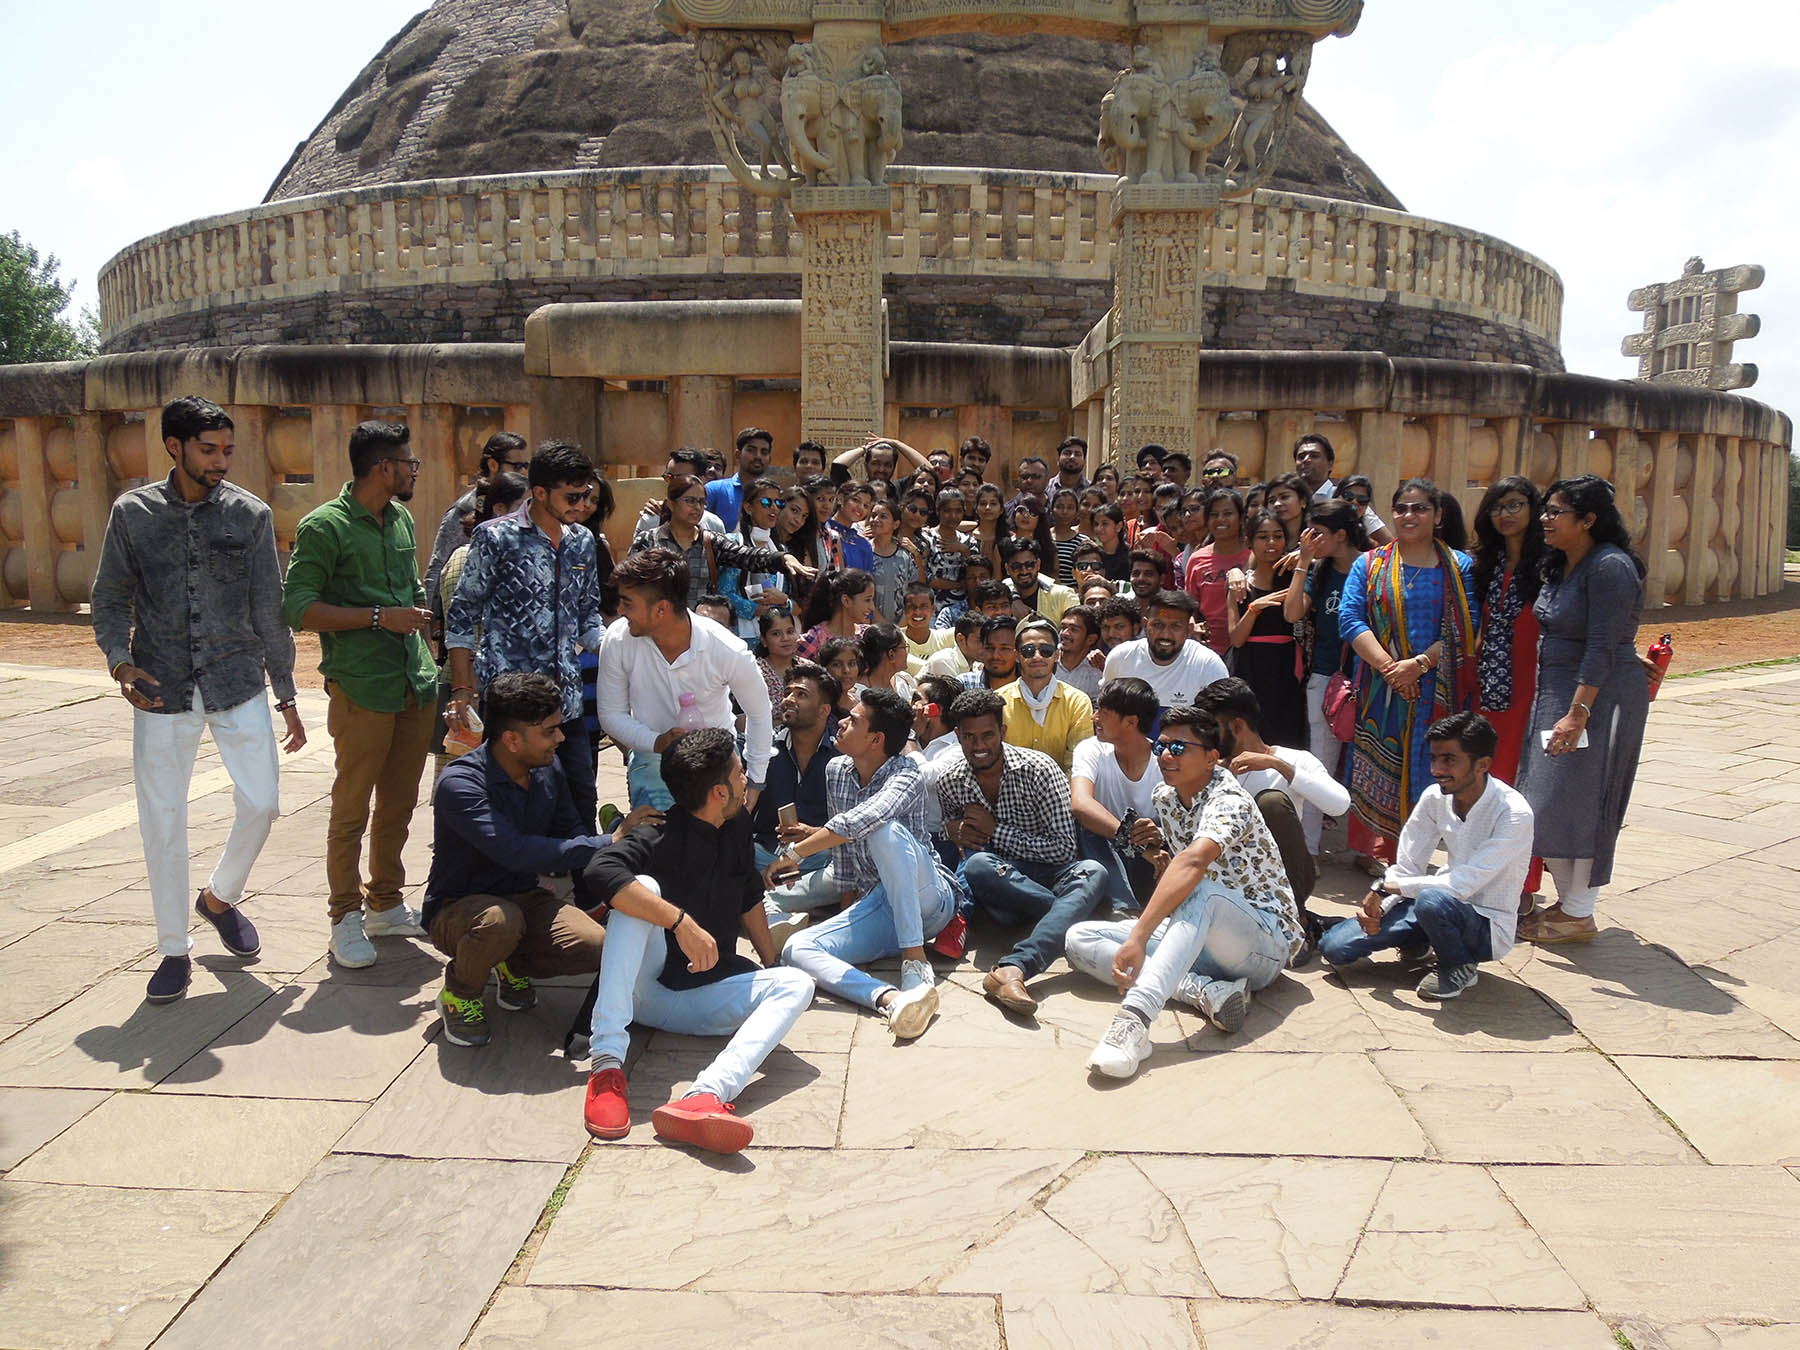 sanchi educational trip, best mba colleges in bhopal, admission in mba college